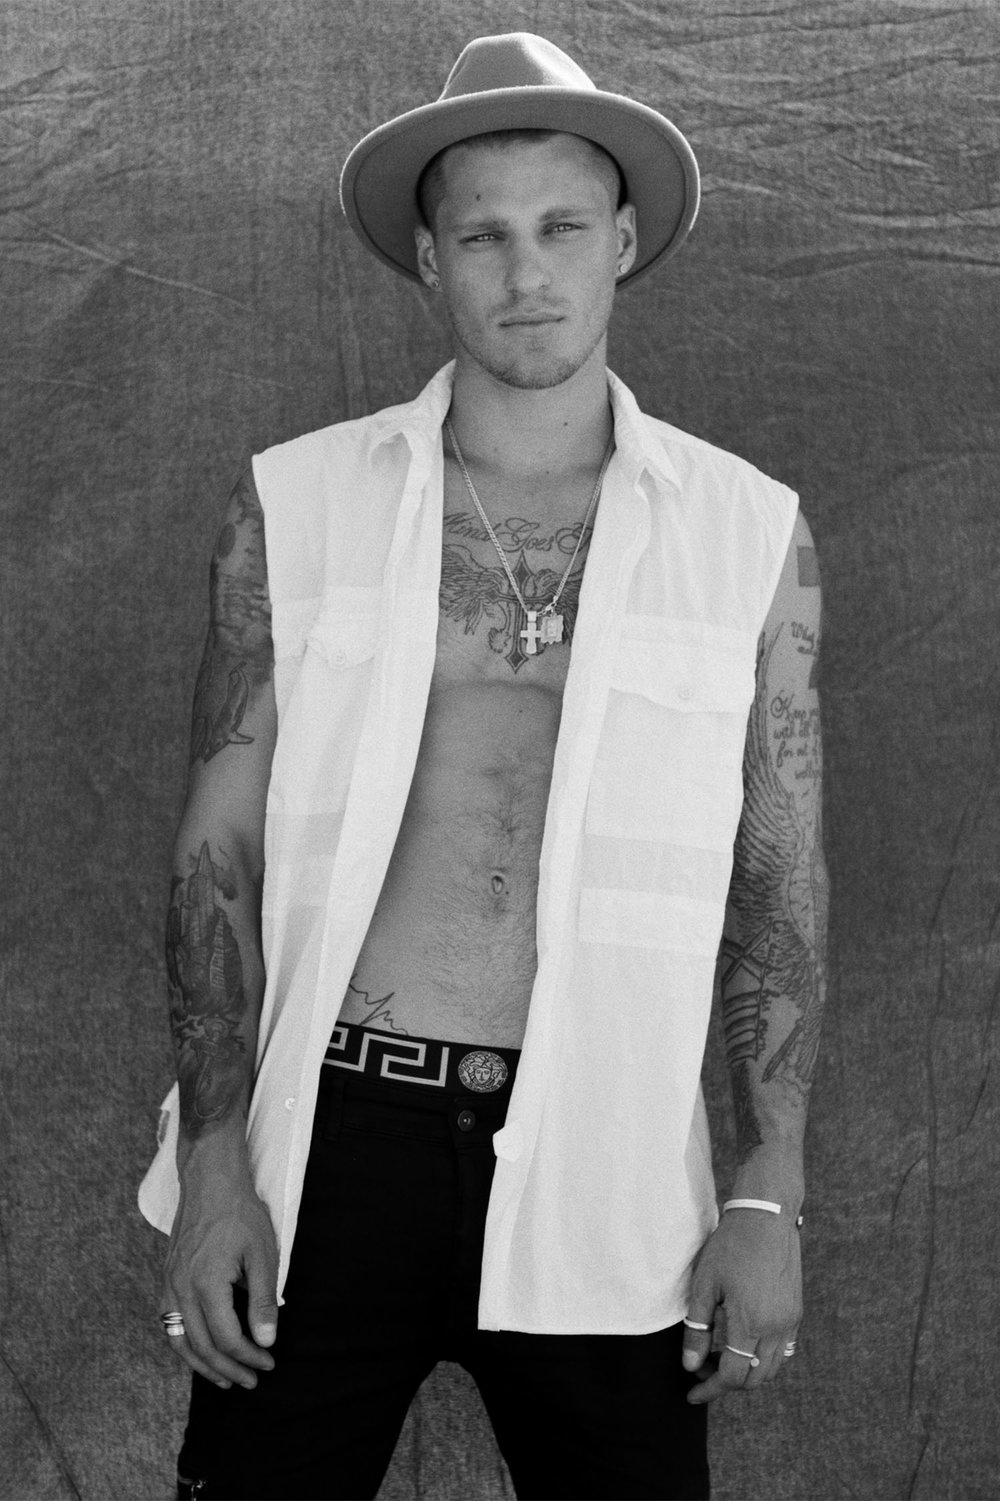 Fashion model Vadim Ivanov shows off tattoos and fit physique in open shirt for black and white photoshoot